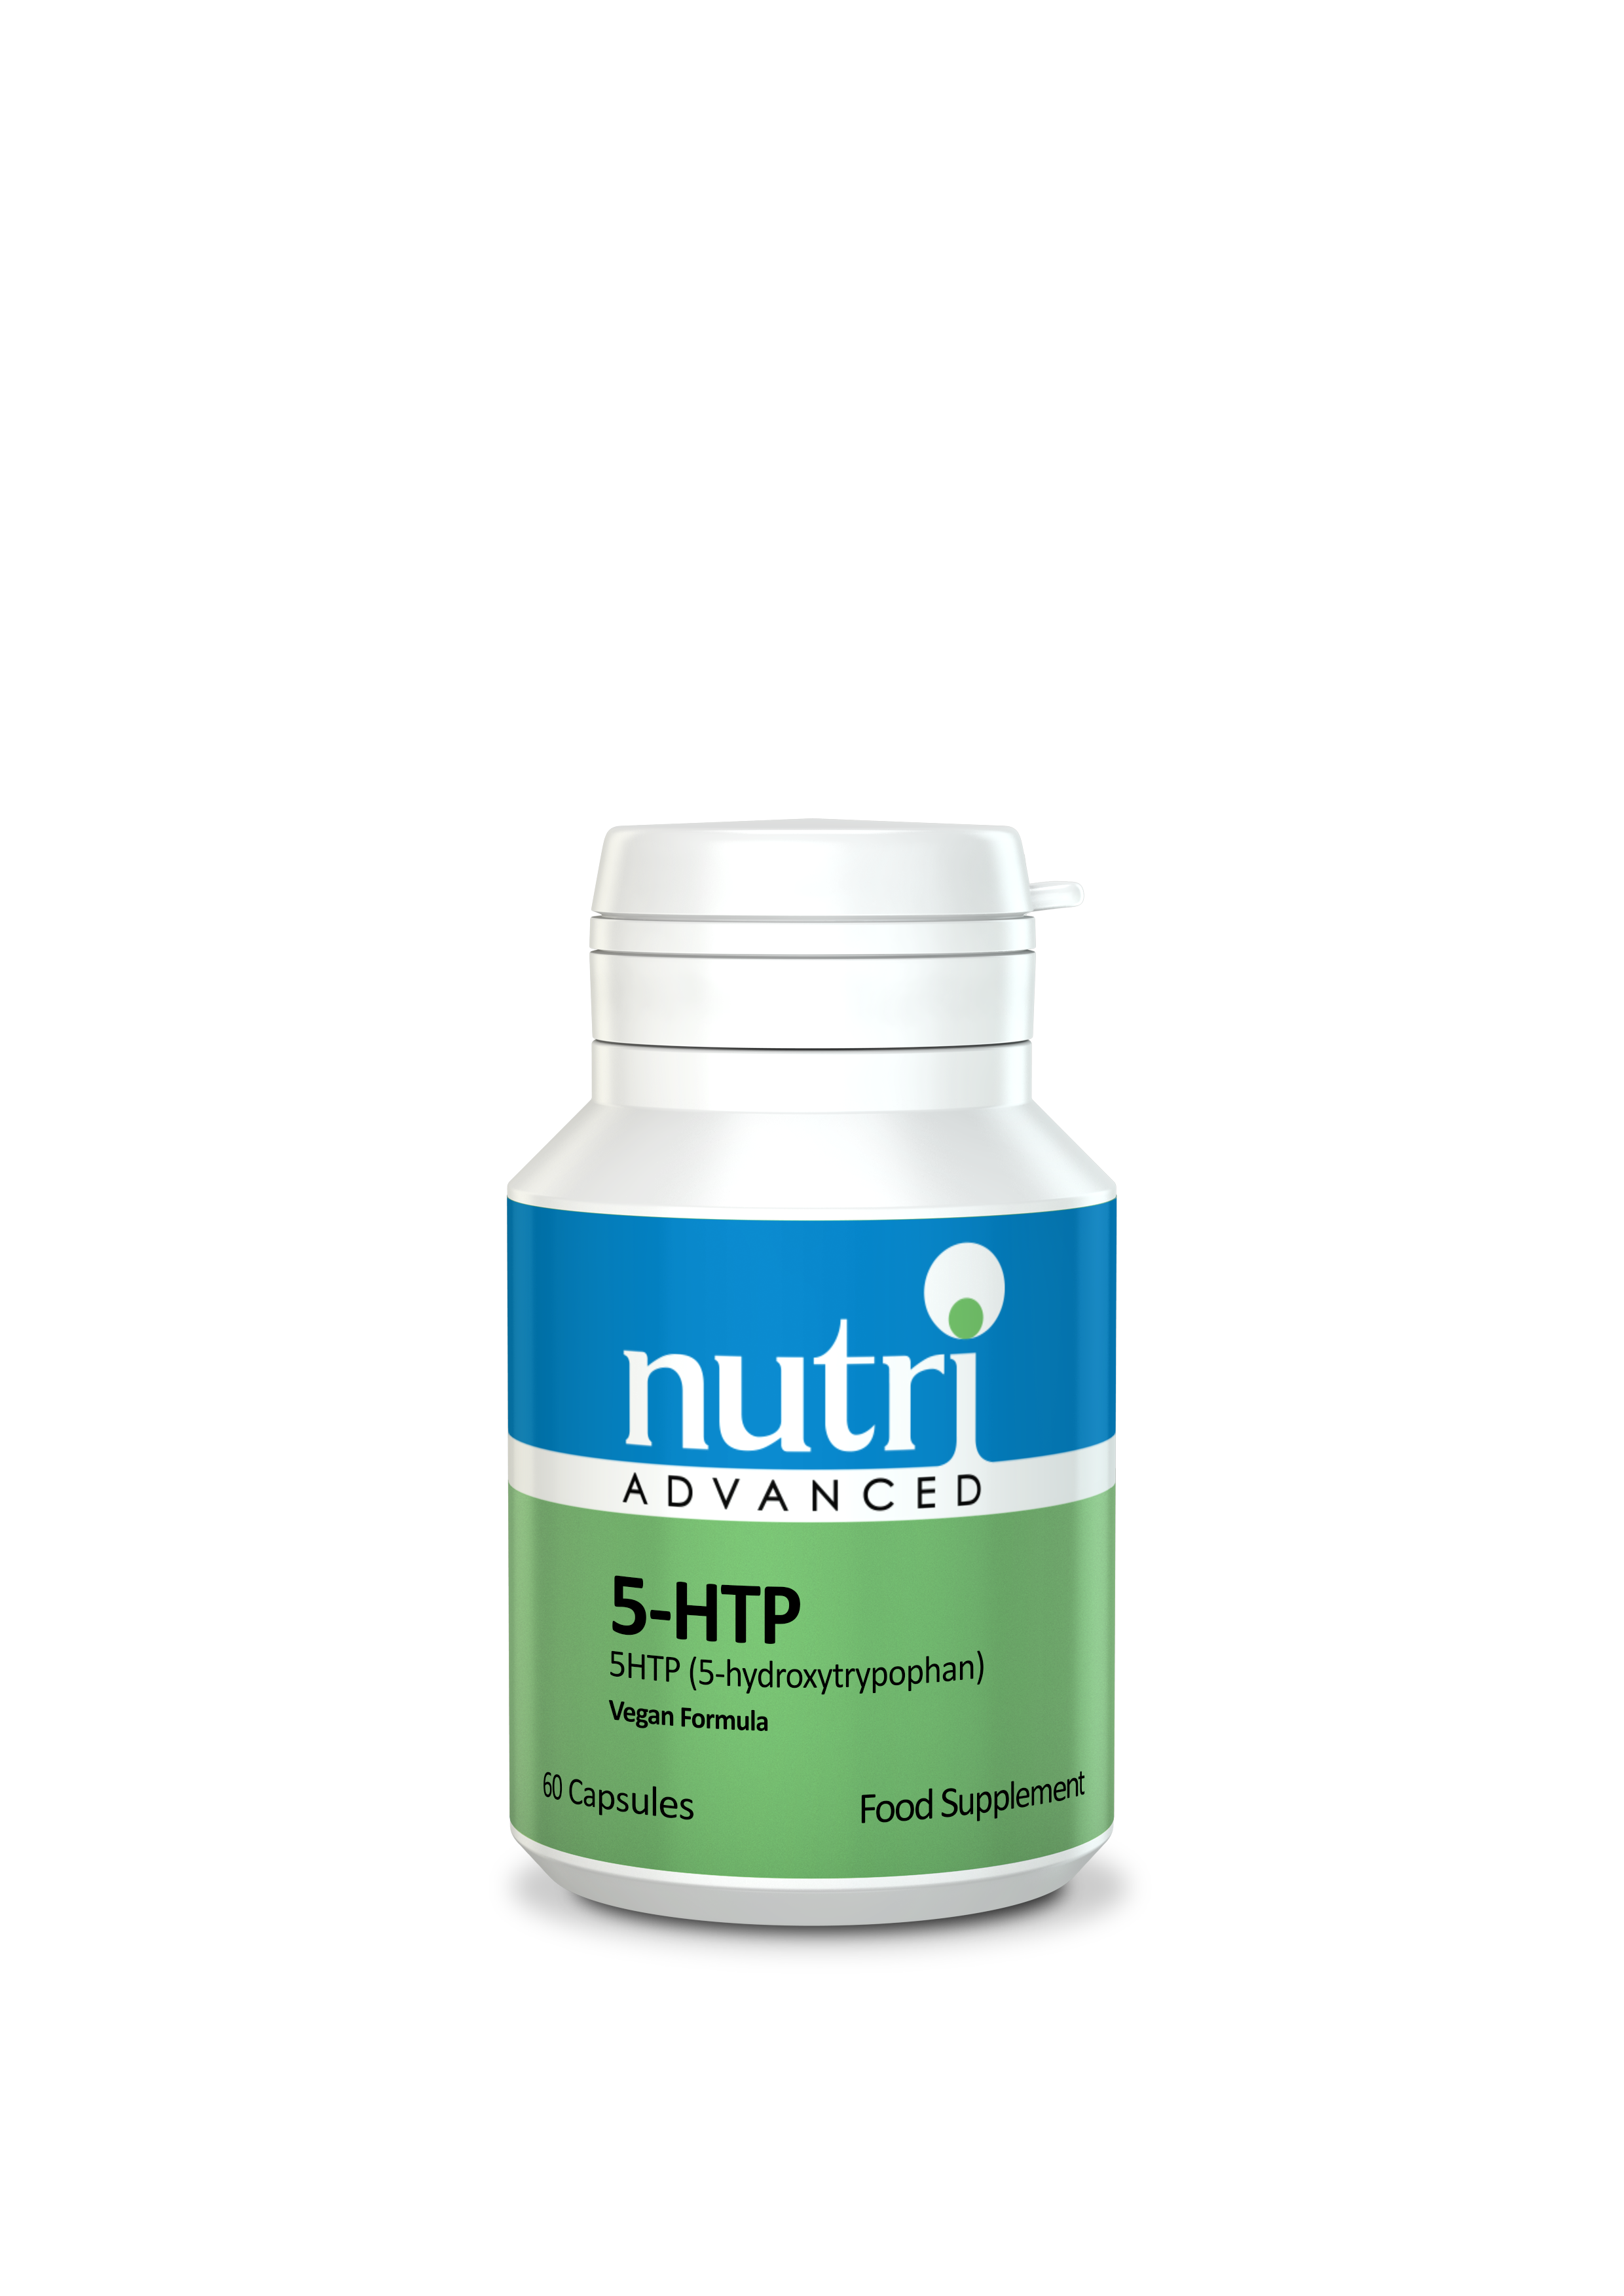 Nutri Advanced 5-HTP size 60